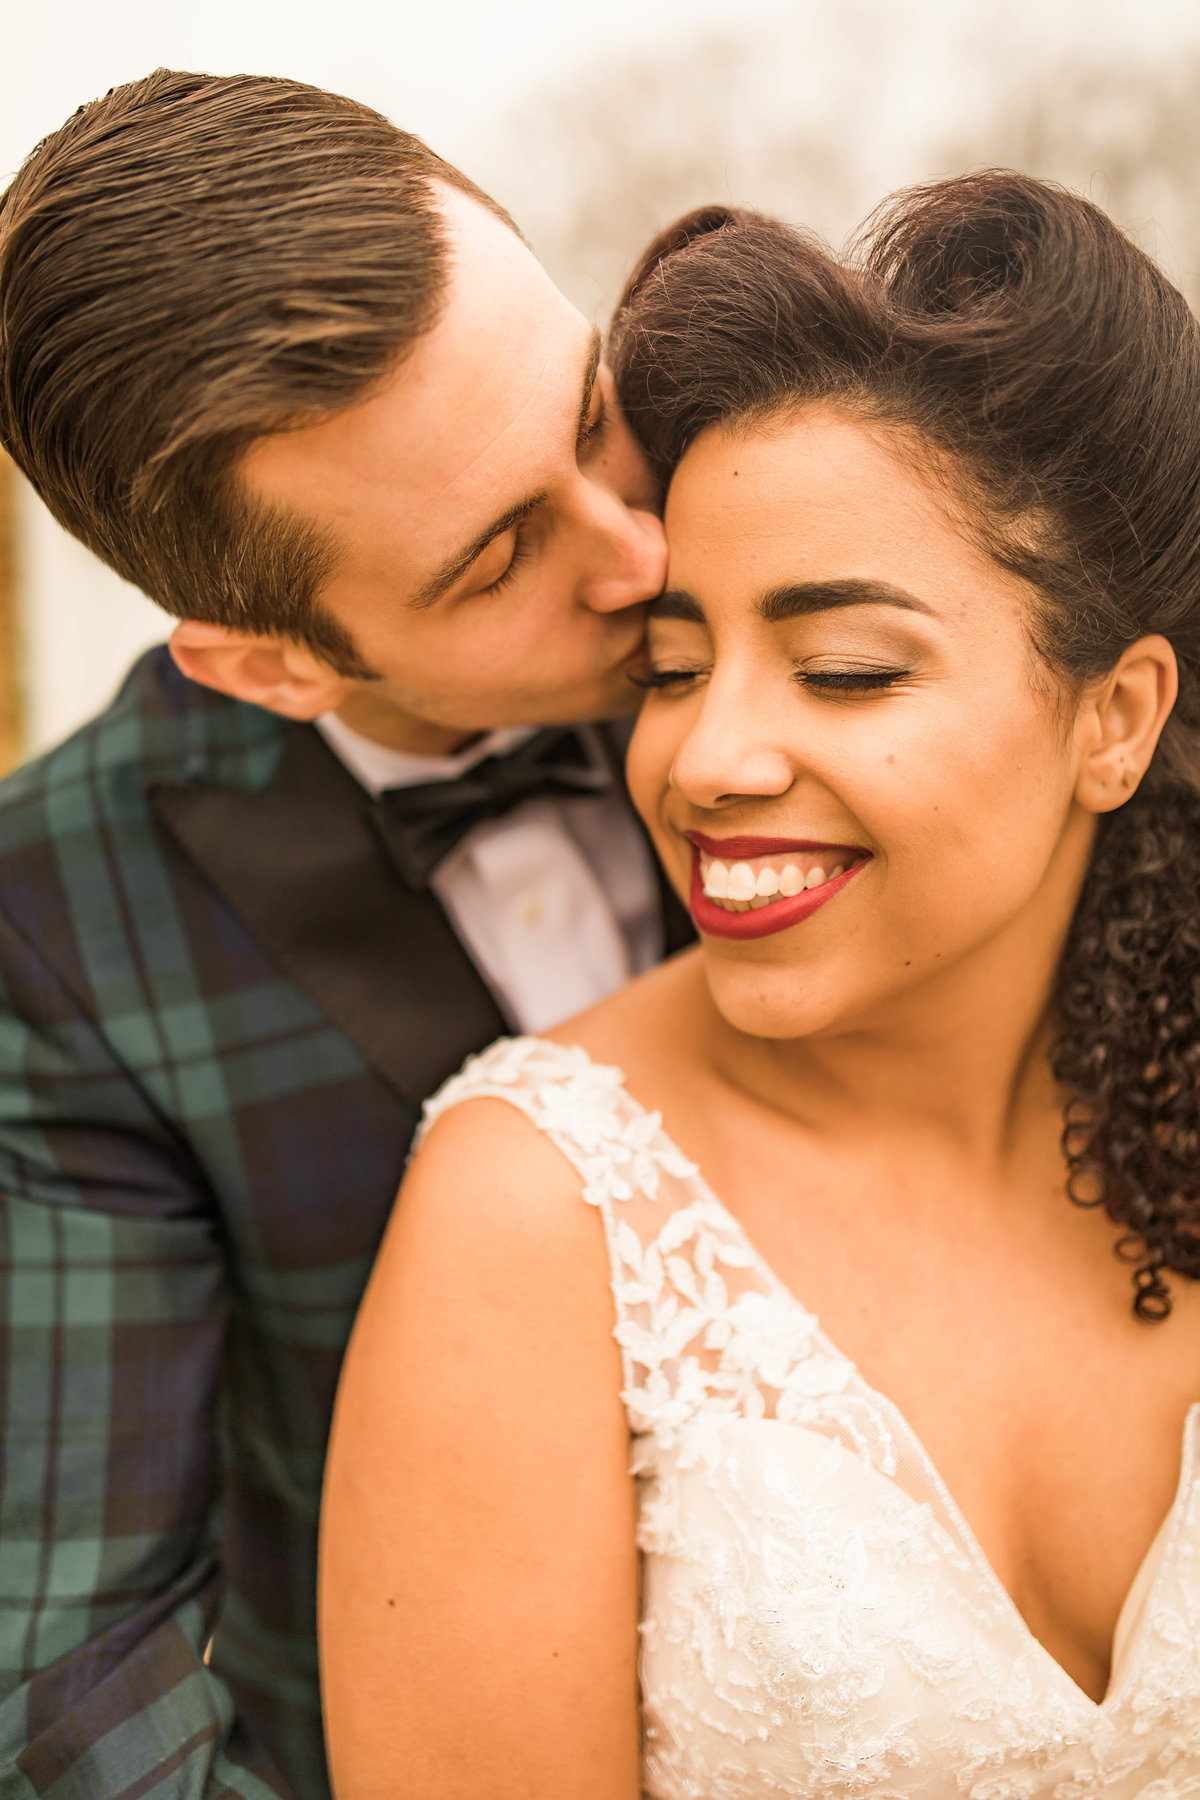 Retro Styled Shoot - Sophia and Andrew - St Louis Wedding Photographer - Allison Slater Photography 216